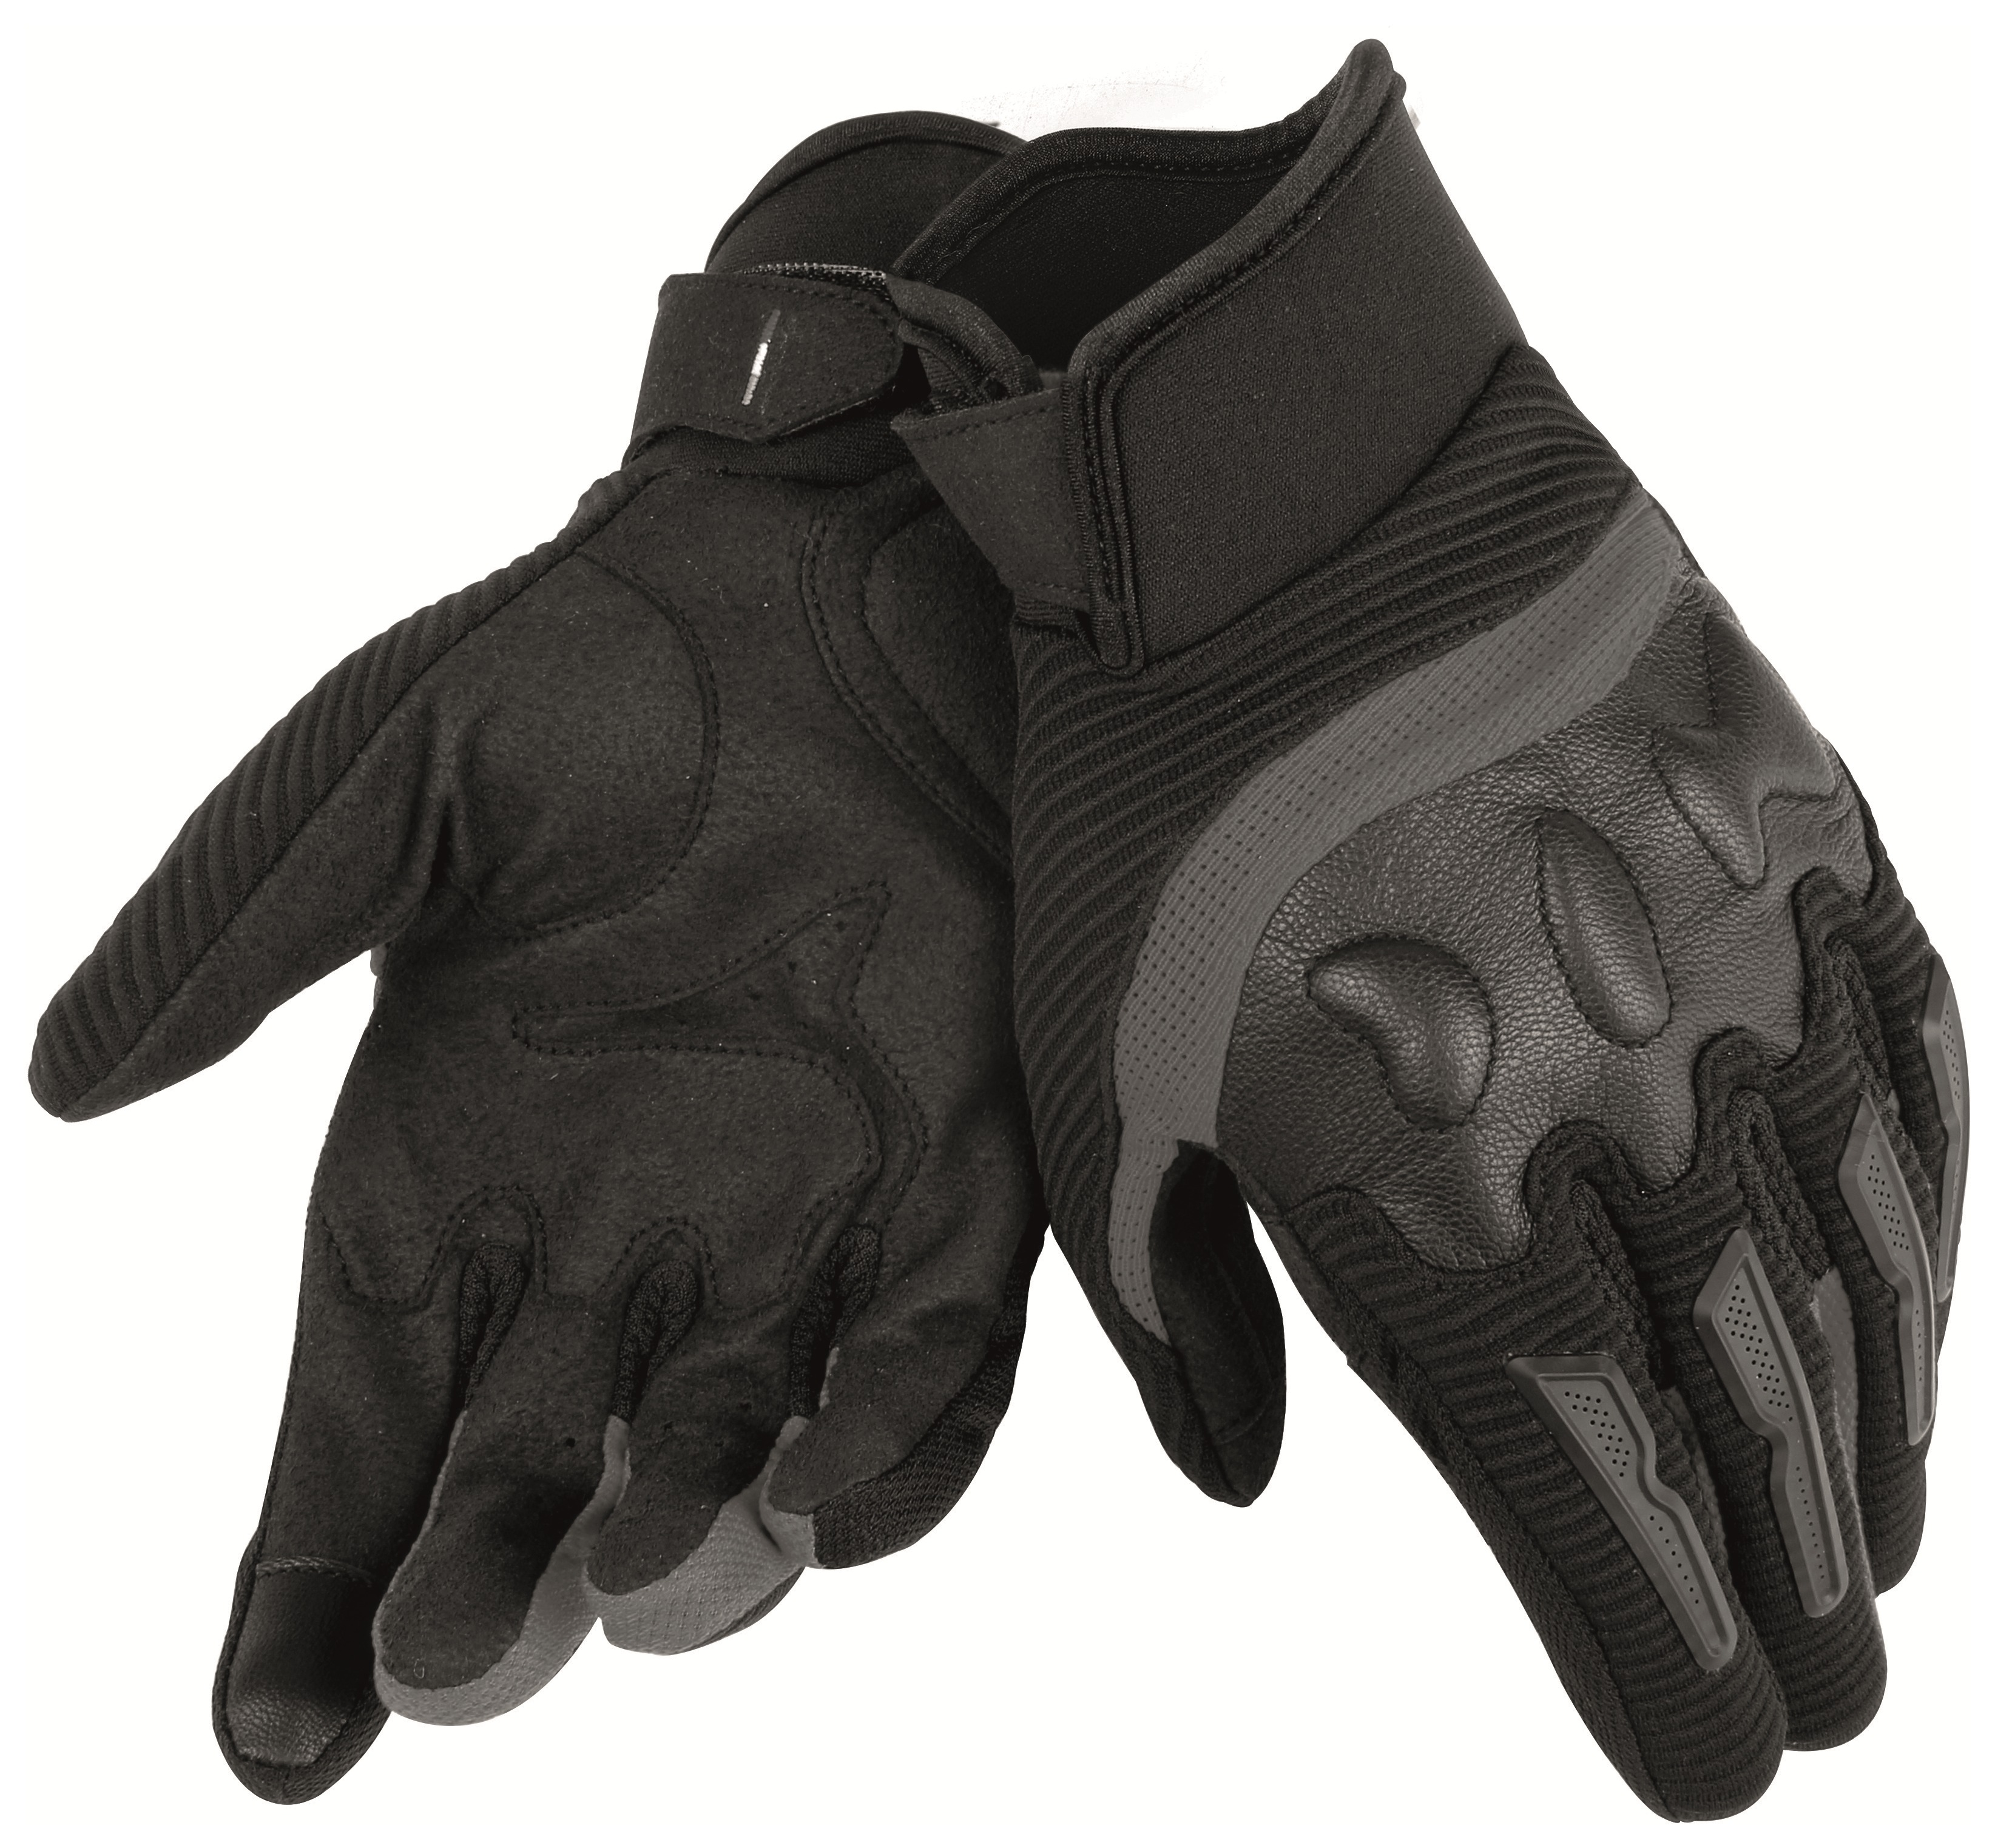 Adjustable Temperature Thermal Gloves Battery Powered